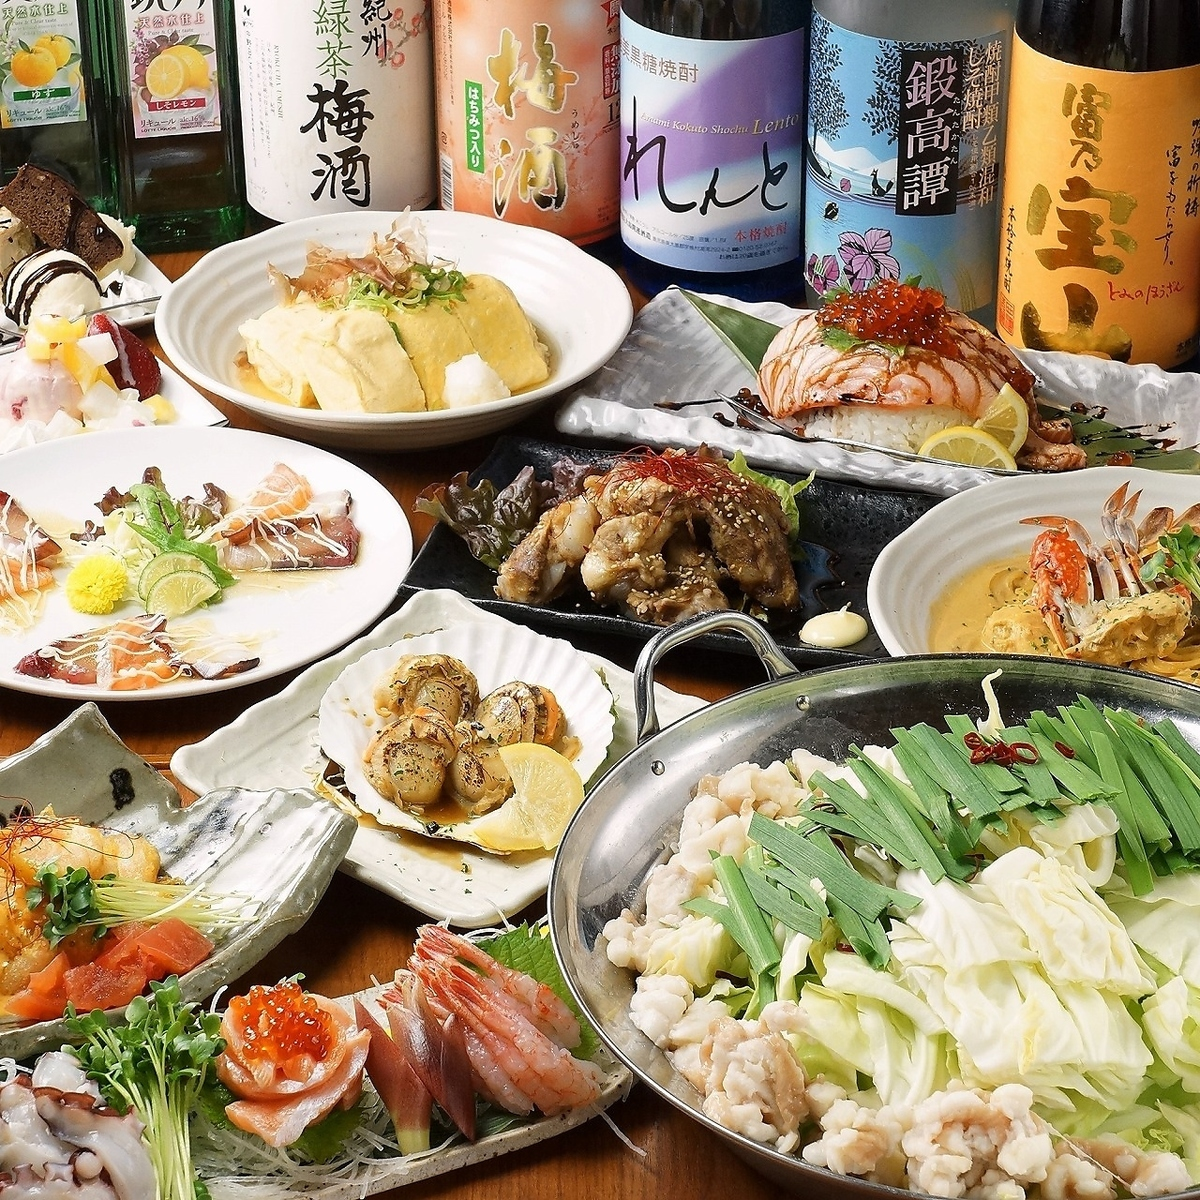 Special price from 1/7 ★ All-you-can-eat beverage for 3 hours 3,480 yen ~ ♪